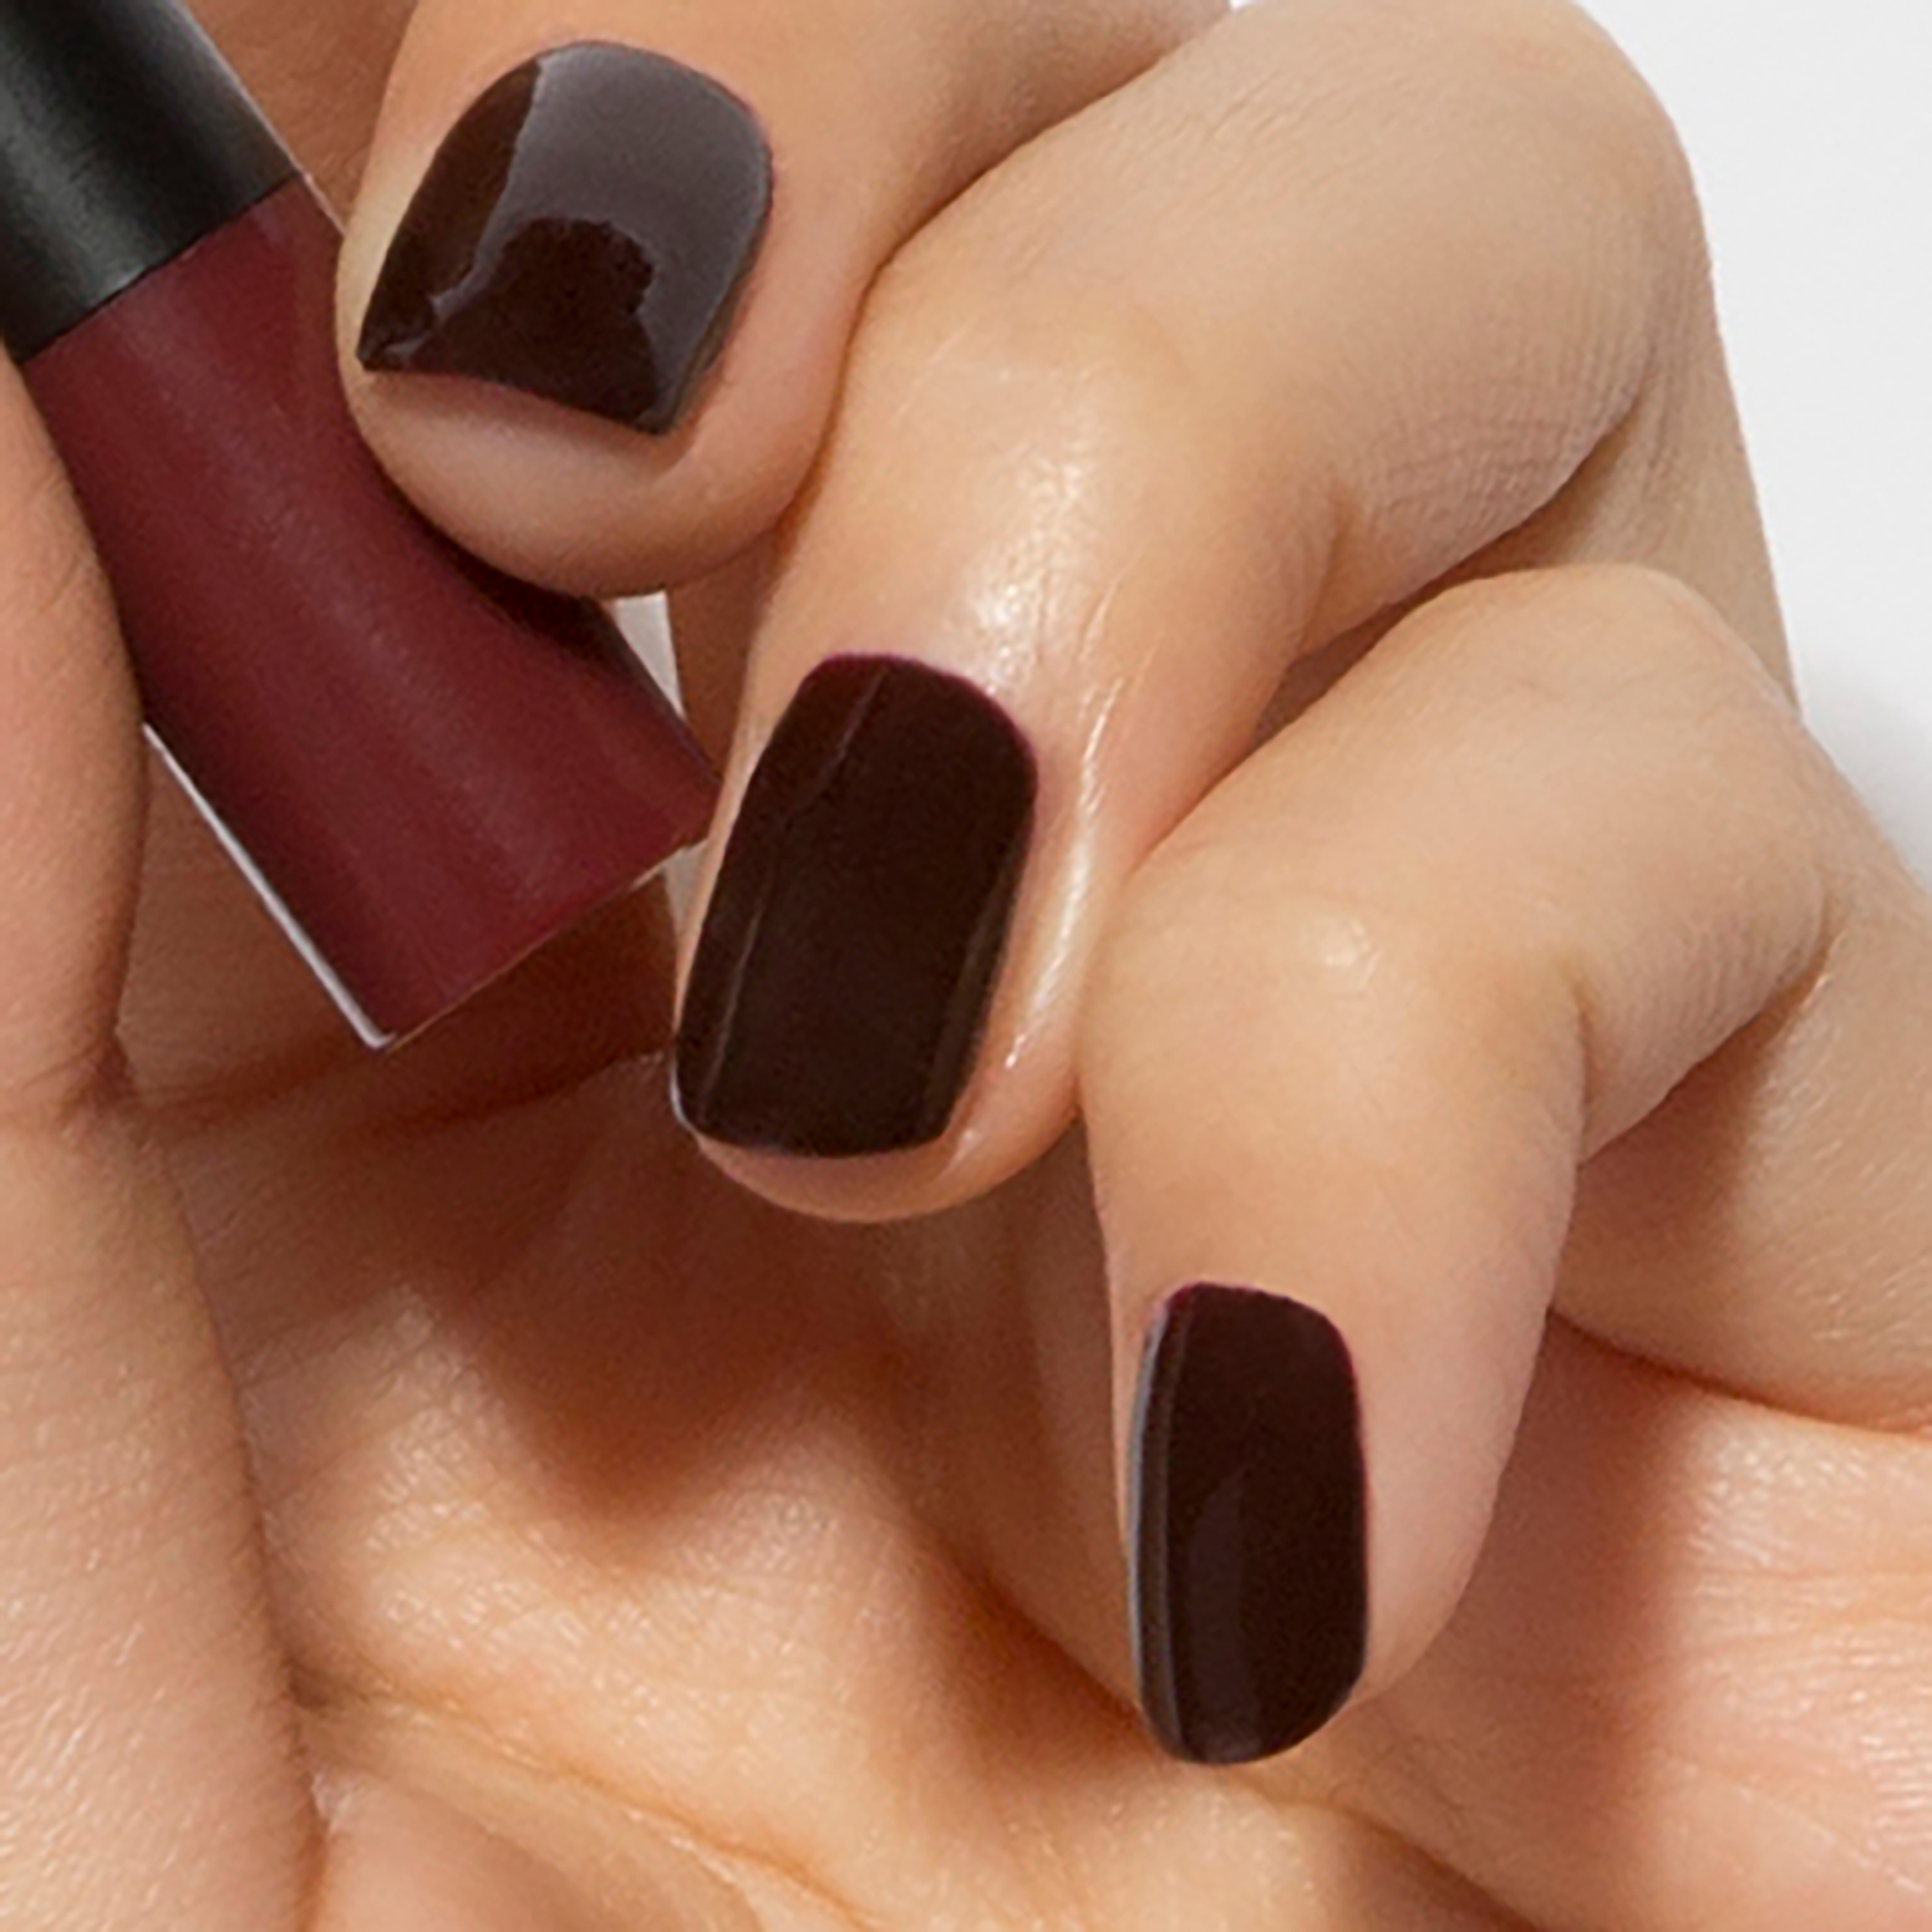 Wondercolour™ Nail Polish in Black Cherry Bomb by Beauty Pie